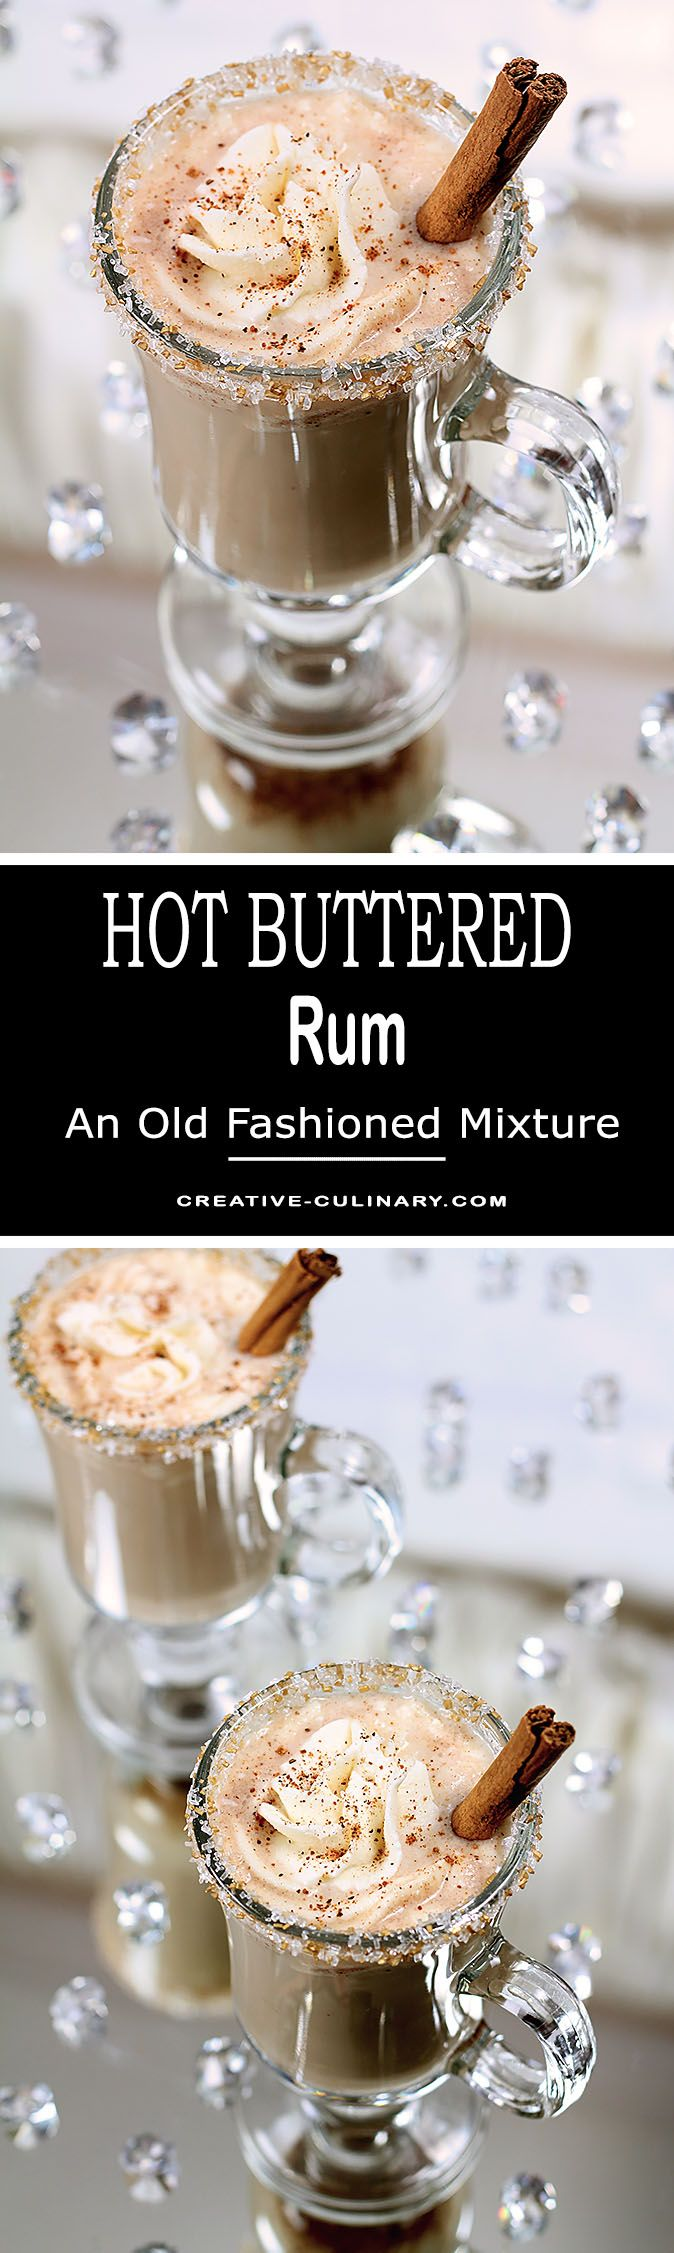 The Best Hot Buttered Rum is this recipe I've been making for years that starts with a vanilla ice cream and brown sugar batter. Simply warm and add rum and you'll be in heaven!